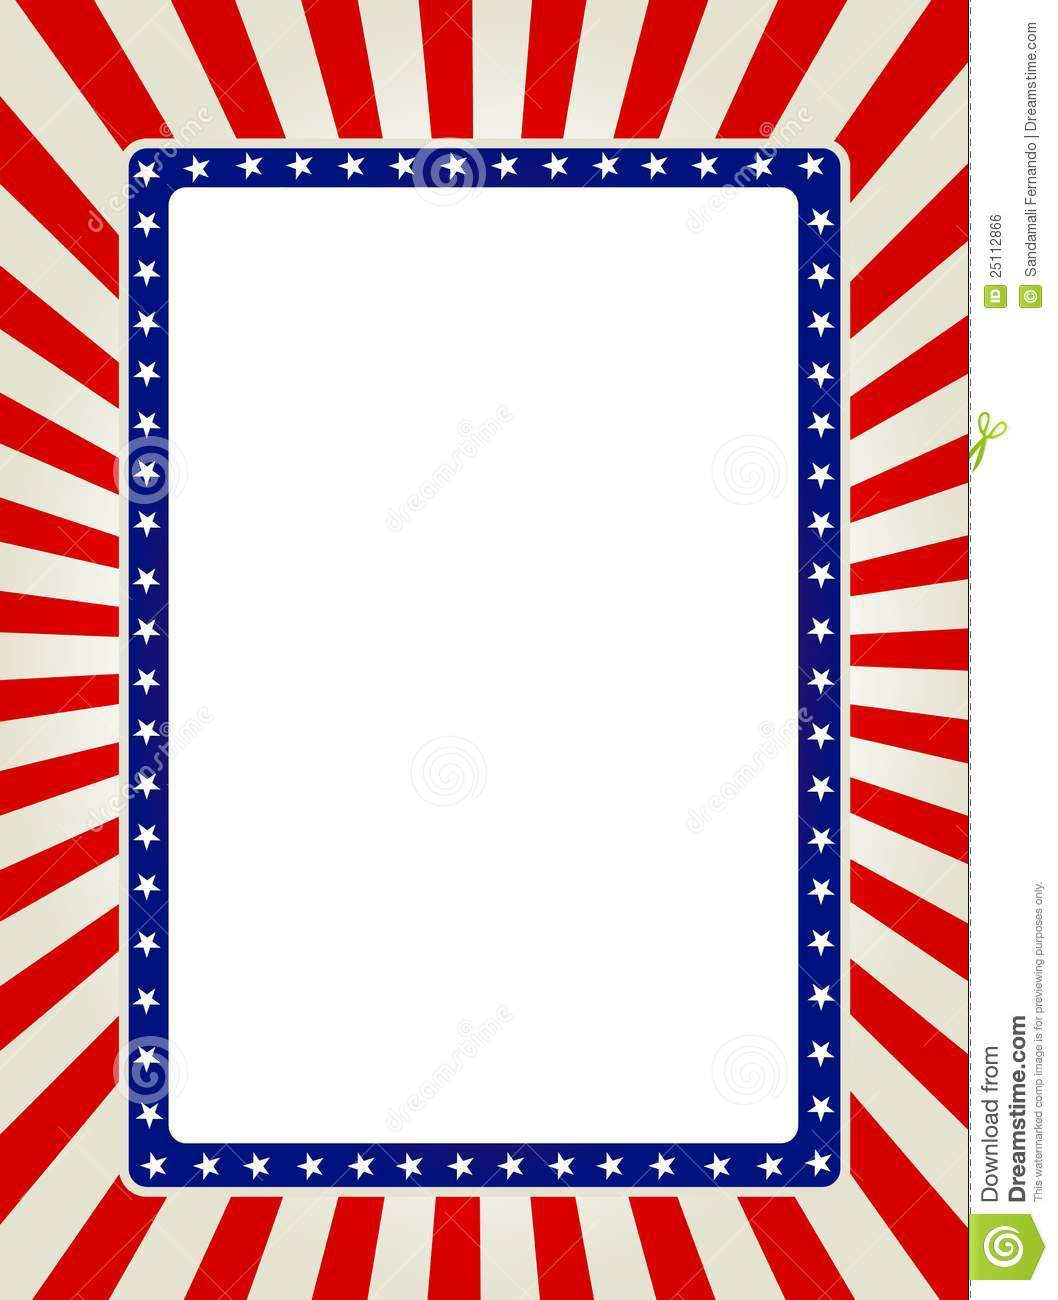 Free download Patriotic Clip Art Page Borders HD Photo